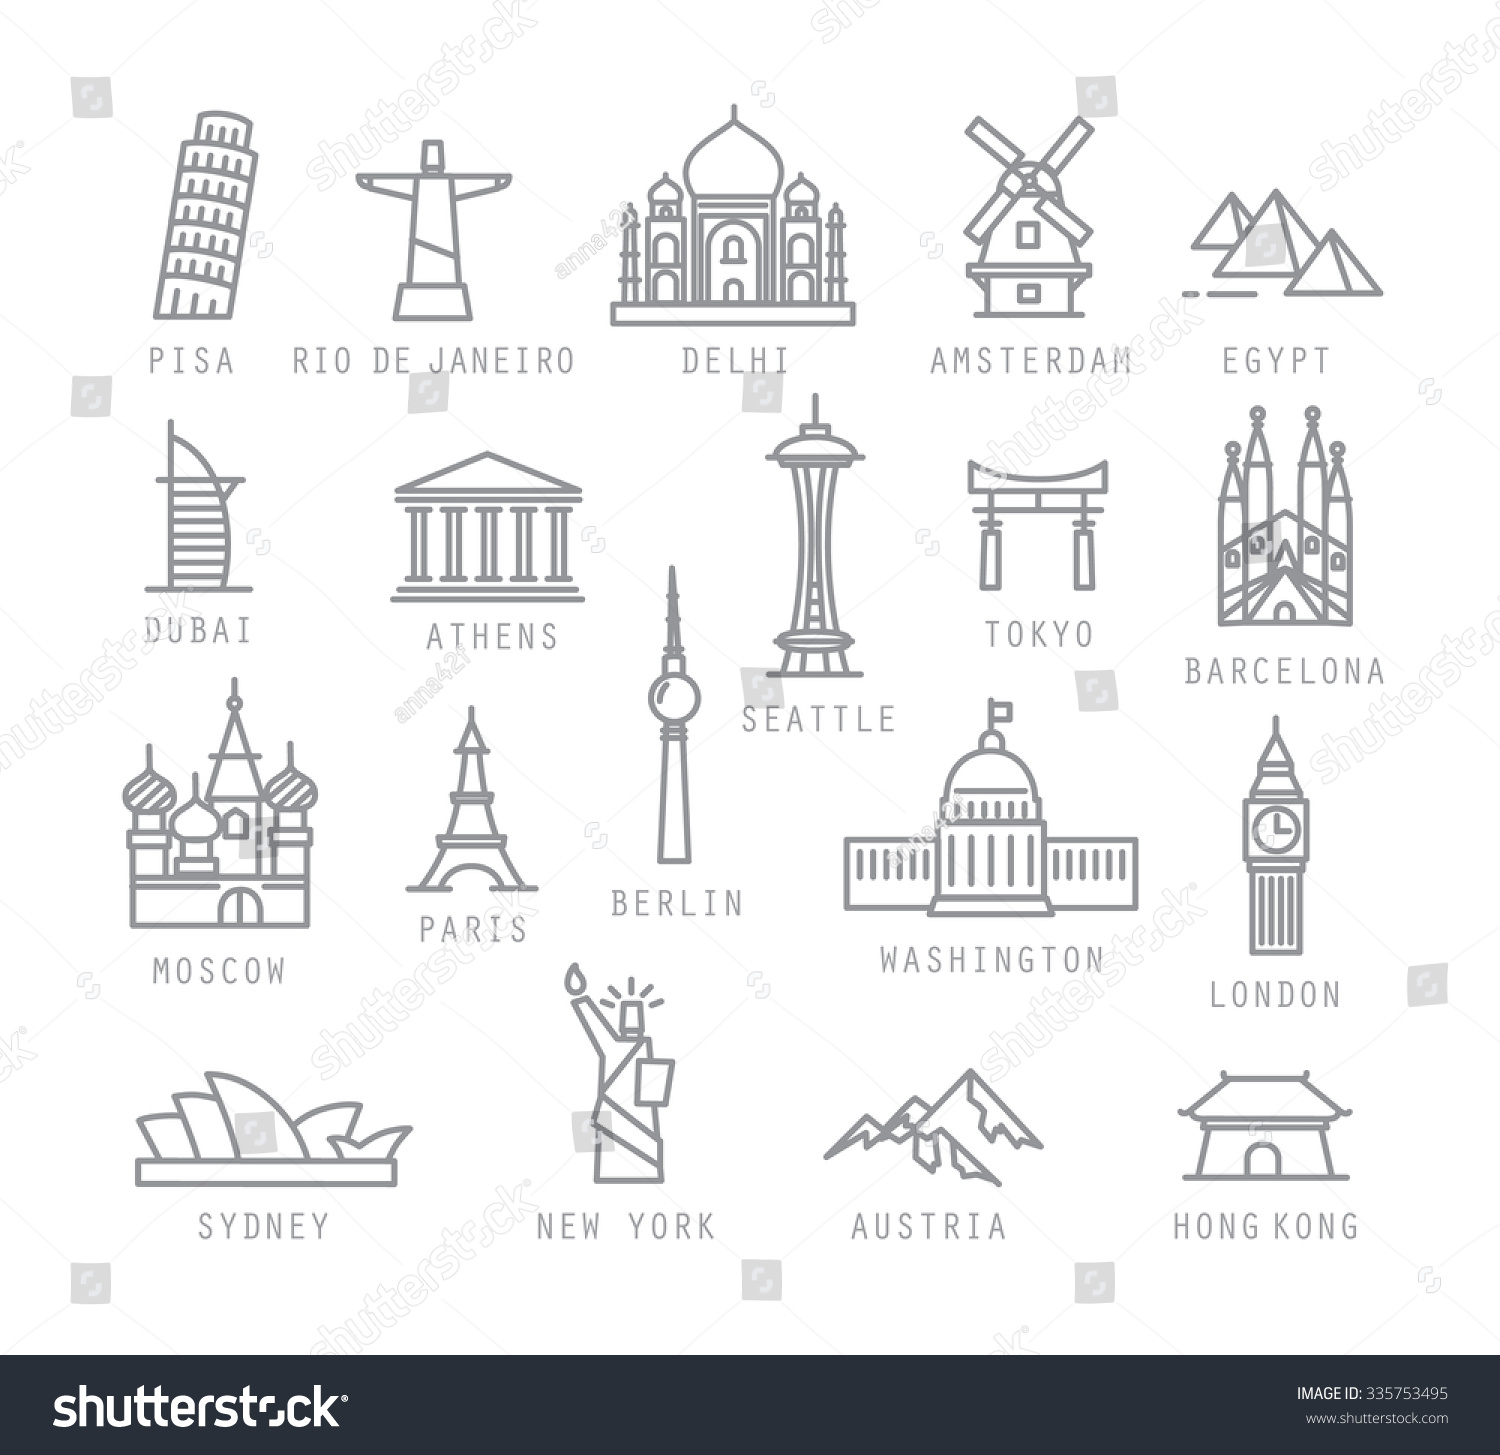 City Icons Flat Style Names Pisa Stock Vector 335753495